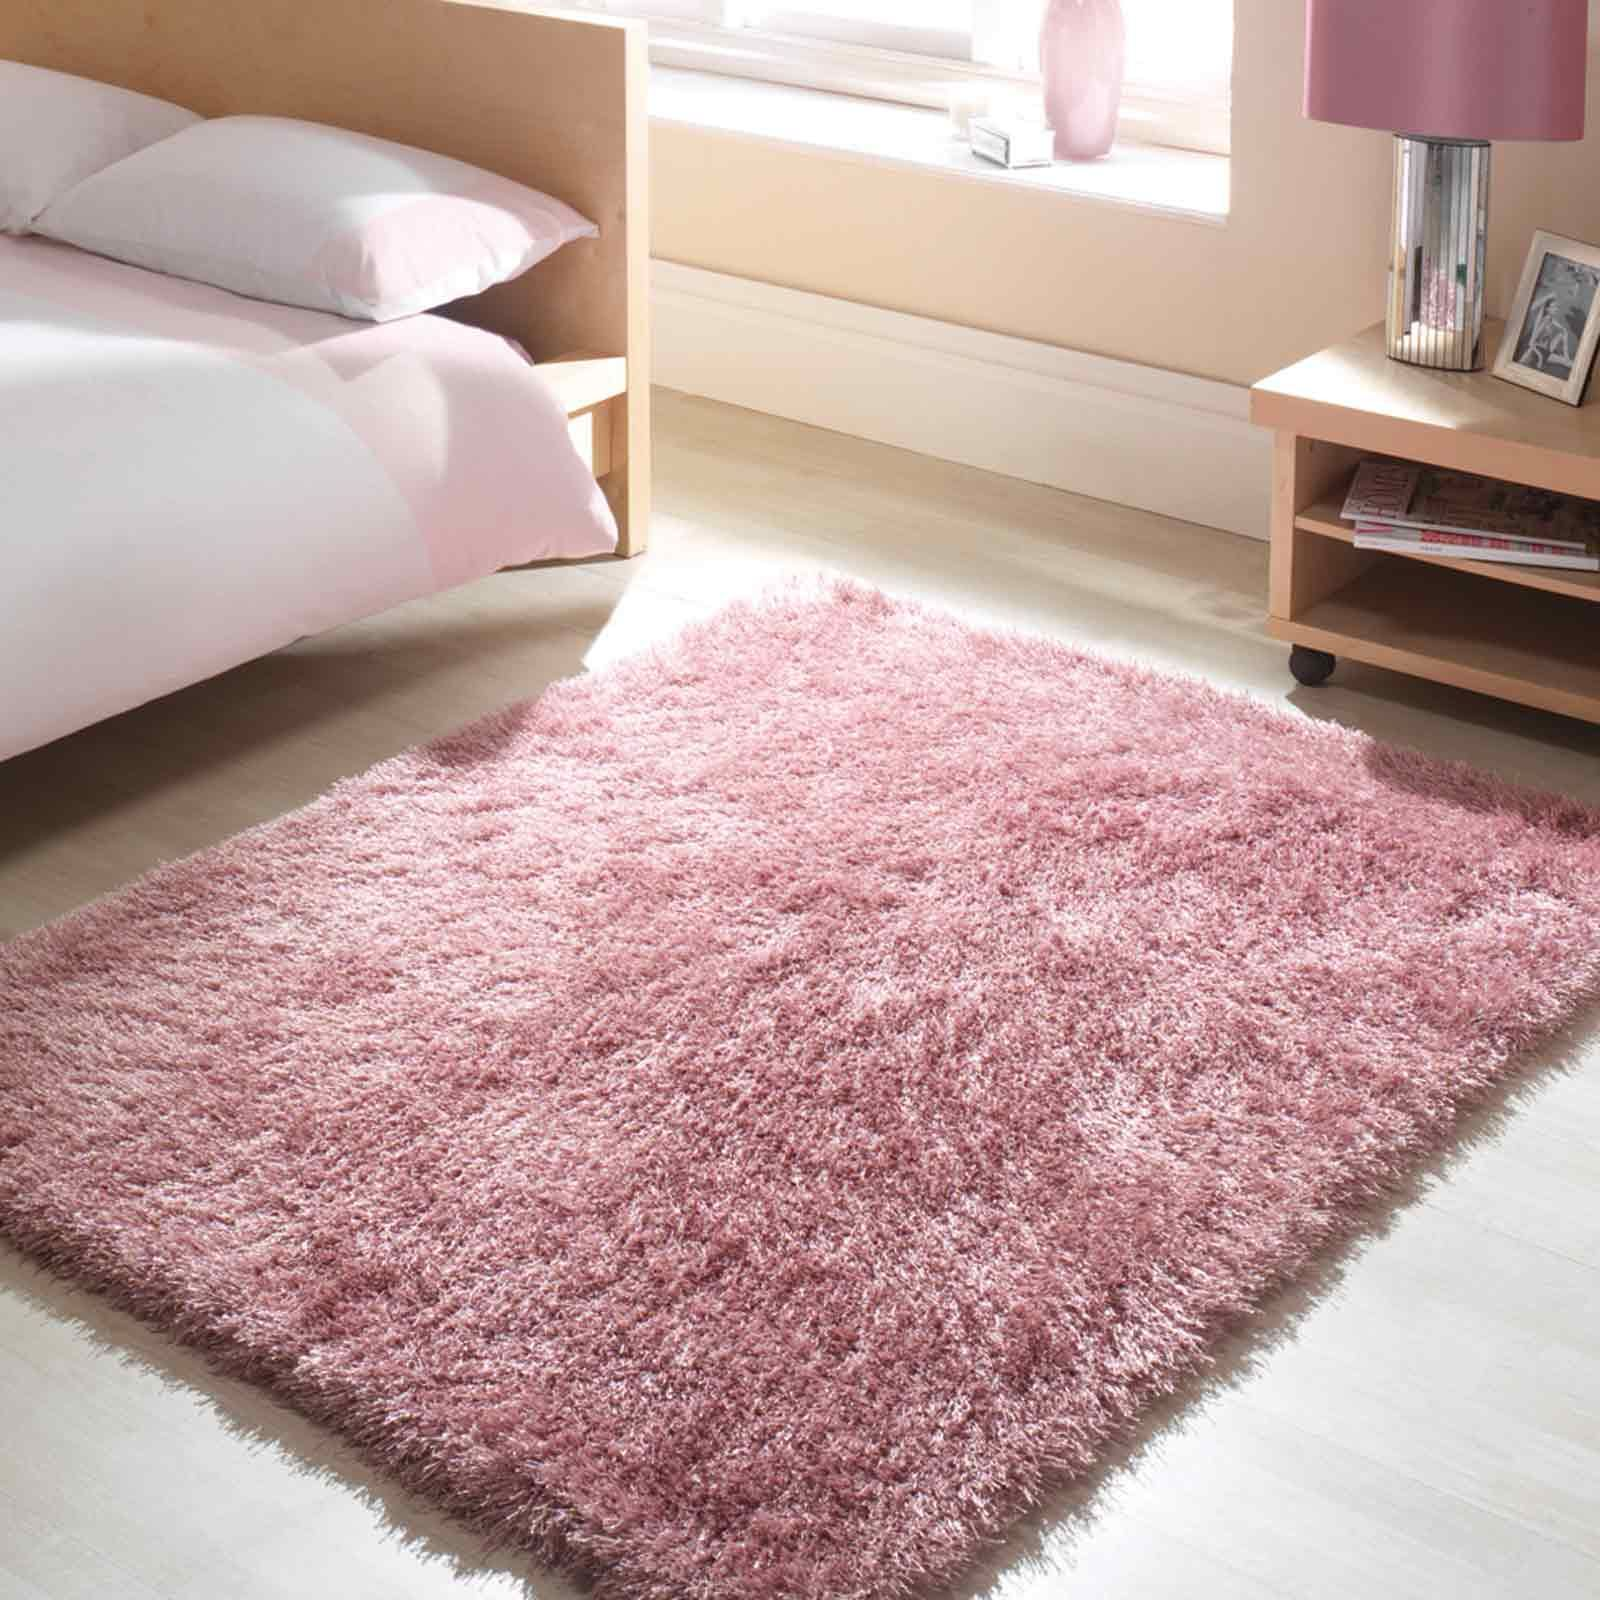 The Santa Cruz Summertime Rug In Crushed Strawberry Feature A Pile That Is Soft And Shimmering